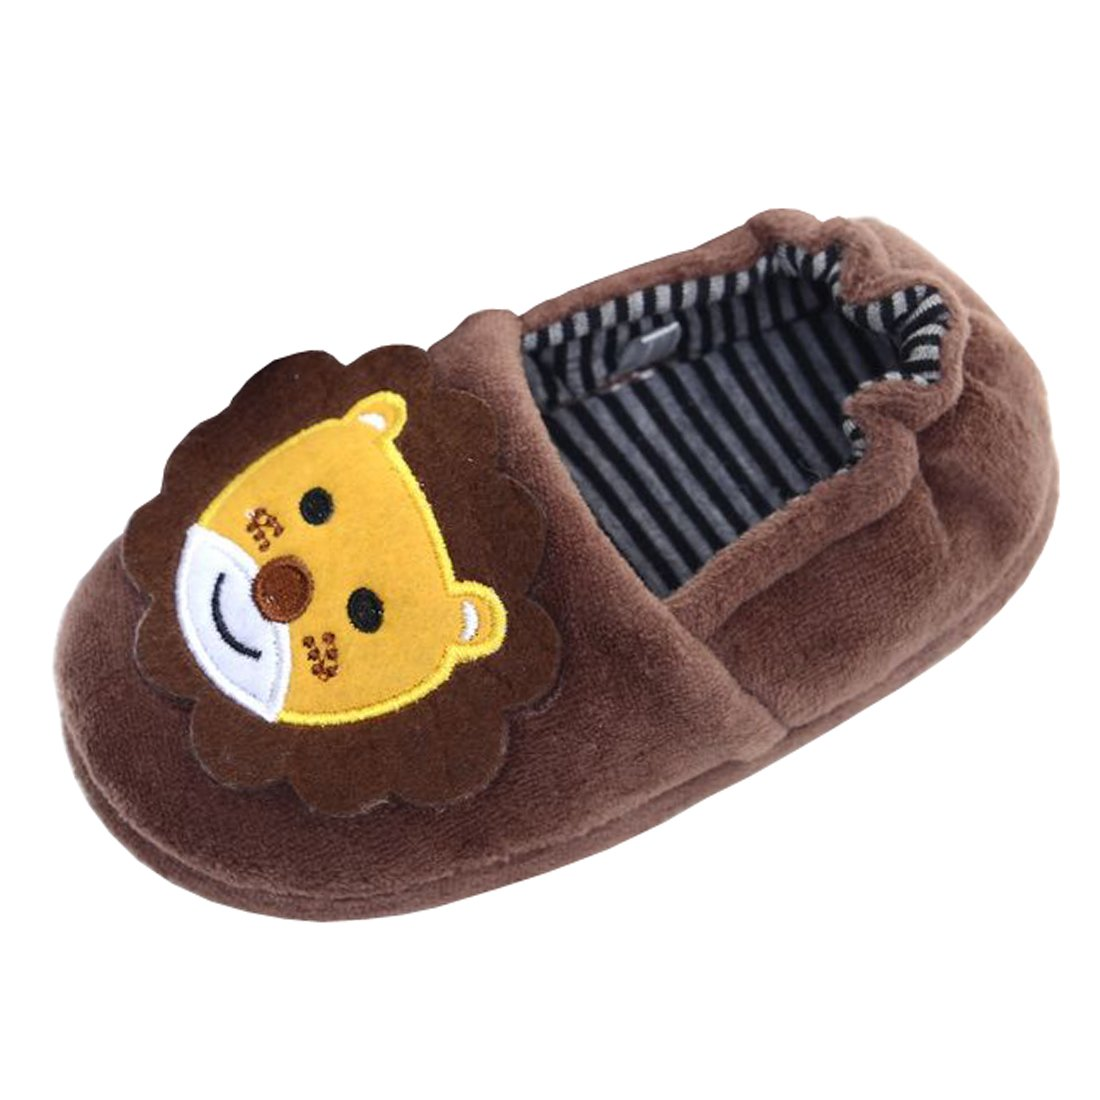 Beeliss Boys Slippers Cartoon House Shoes BLS-817